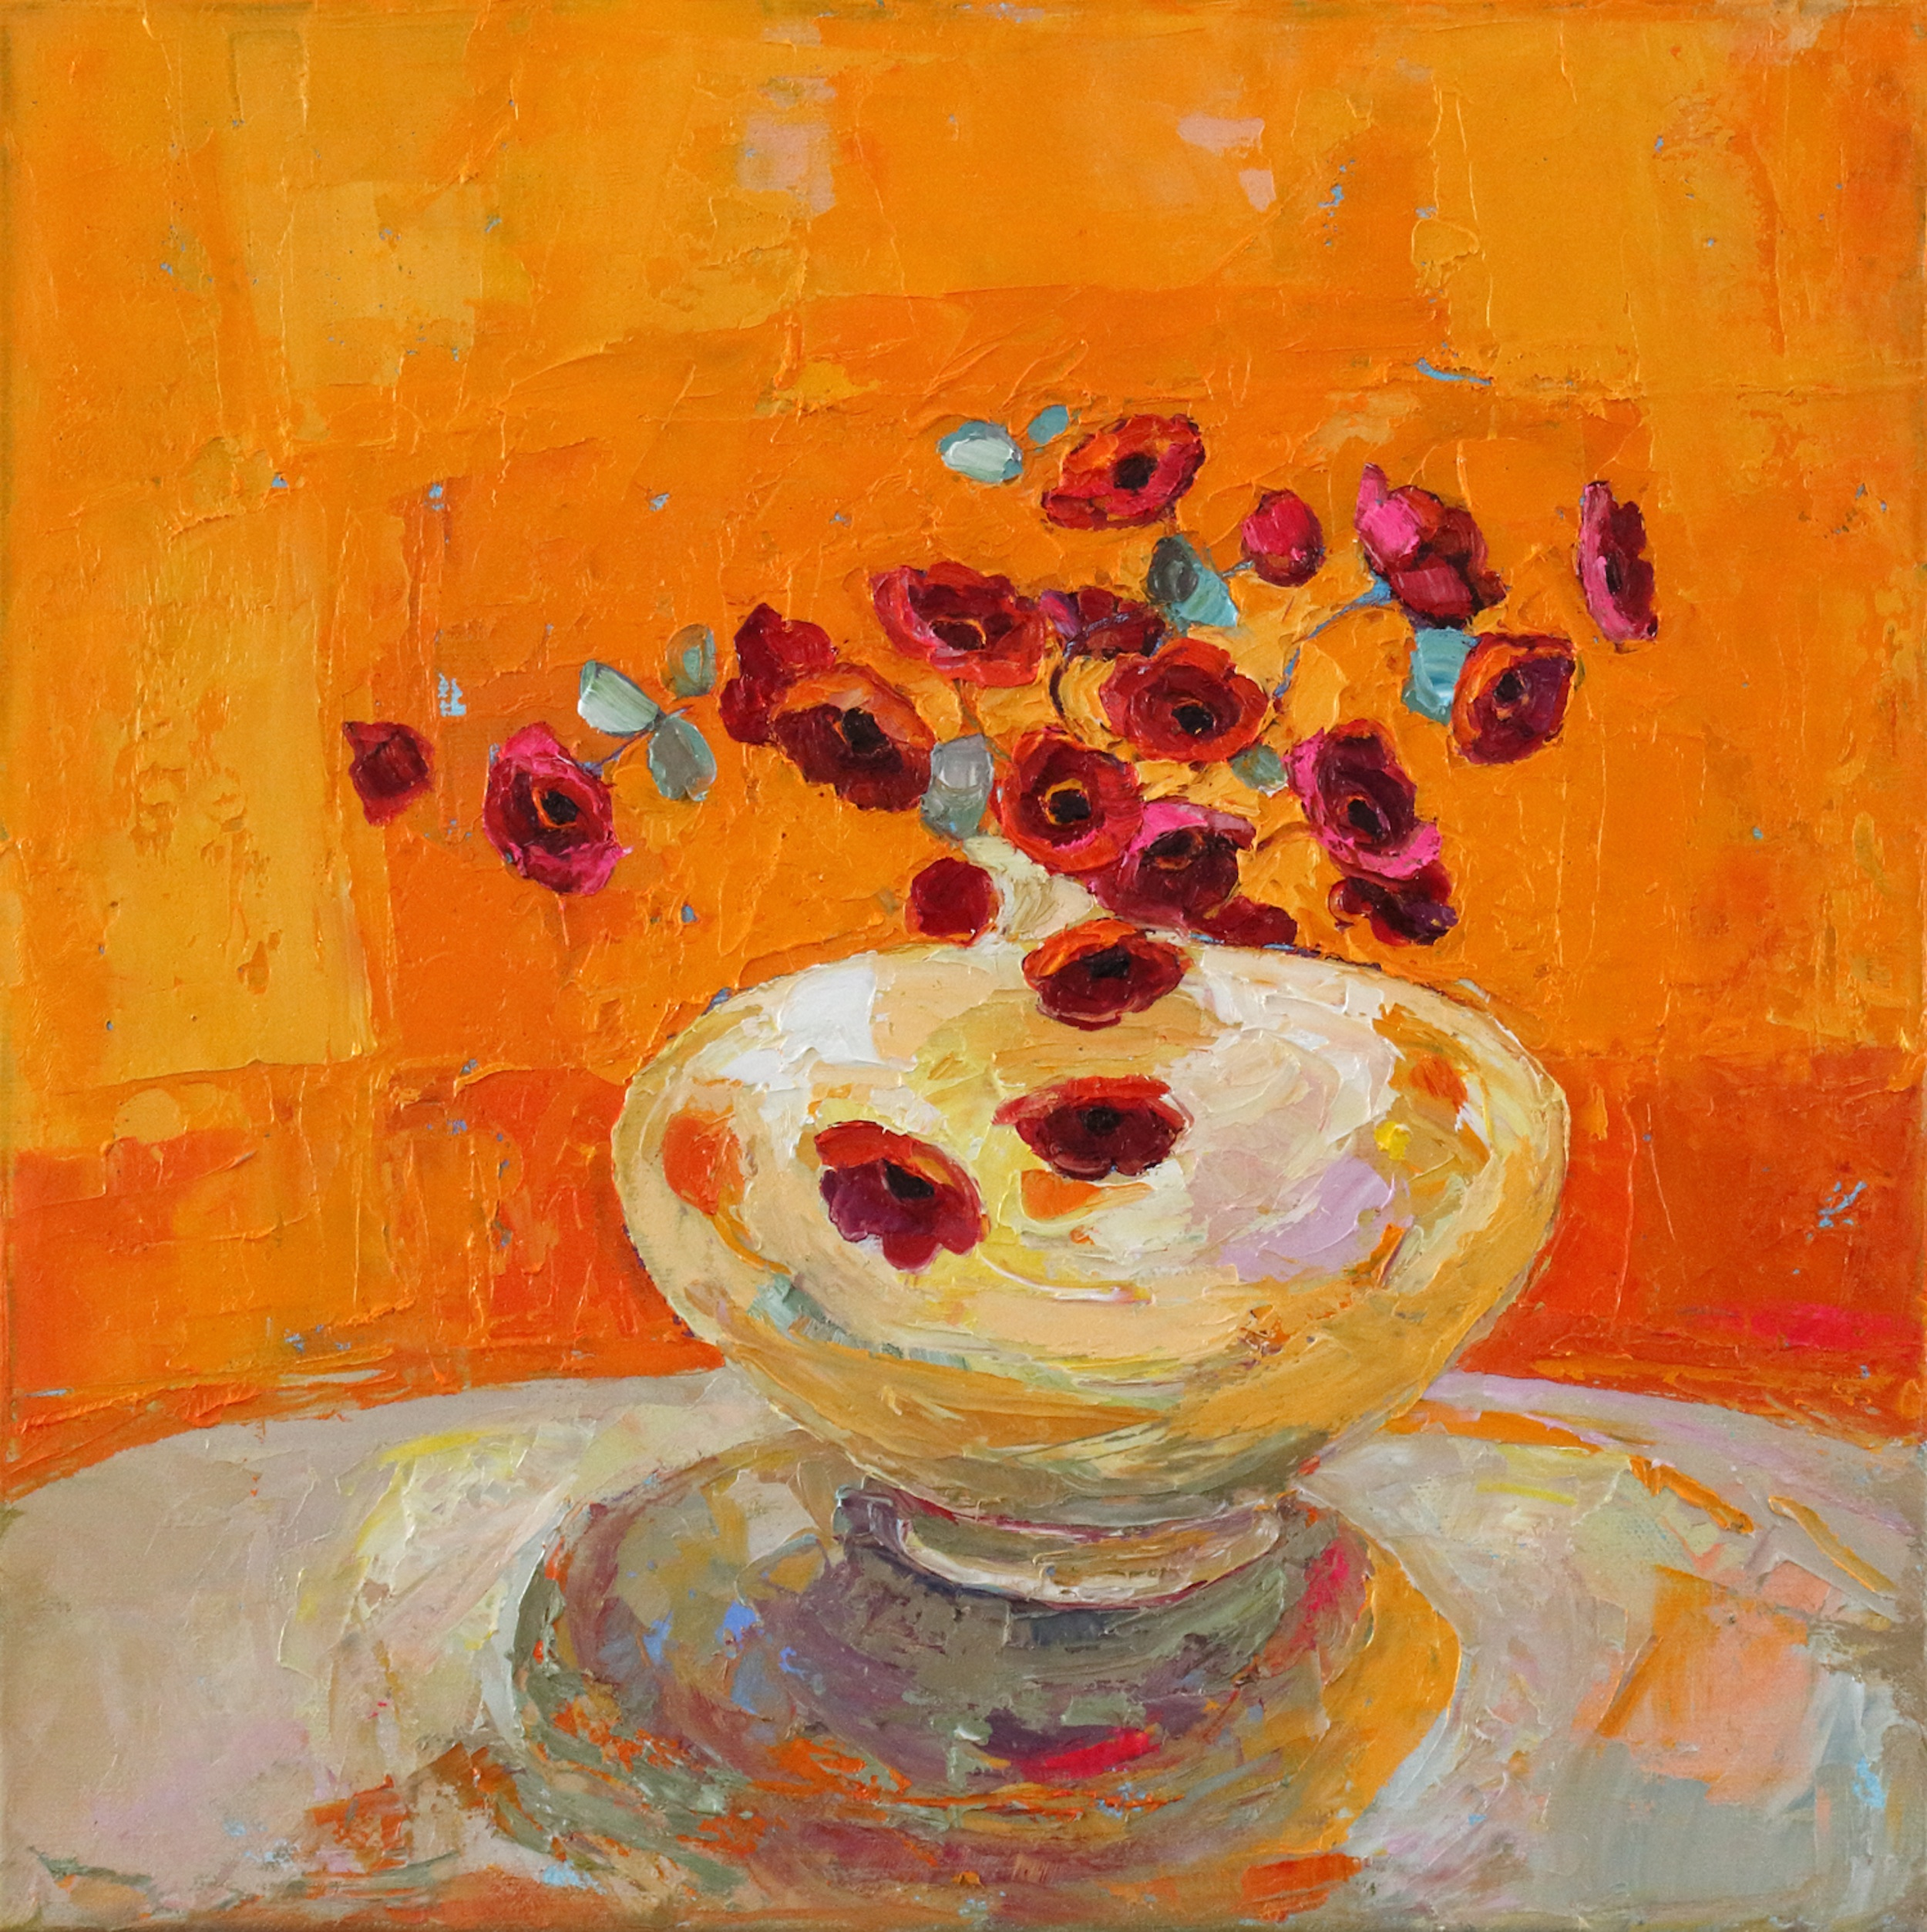 Artist: Kirsty Wither  Title: Hot White Vase  Size: 30 x 30 cm  Medium: Oil on Canvas  Price: £1700